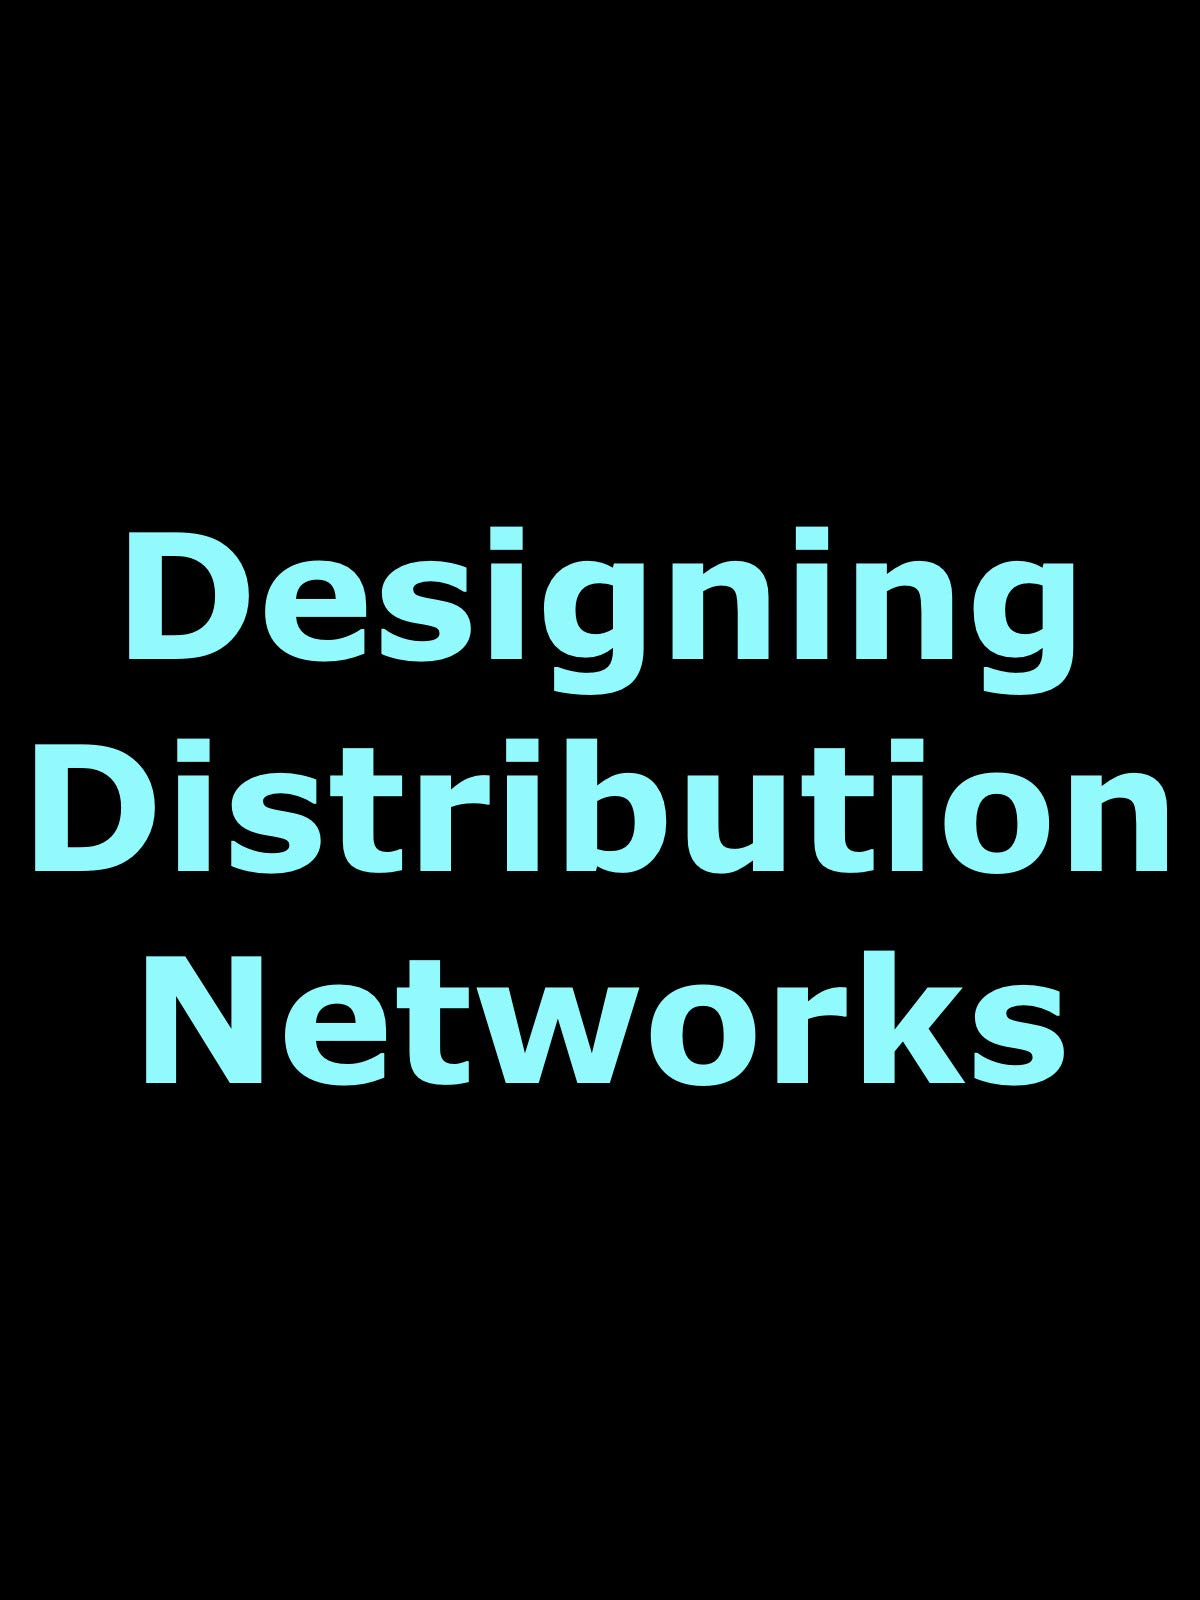 Designing Distribution Networks